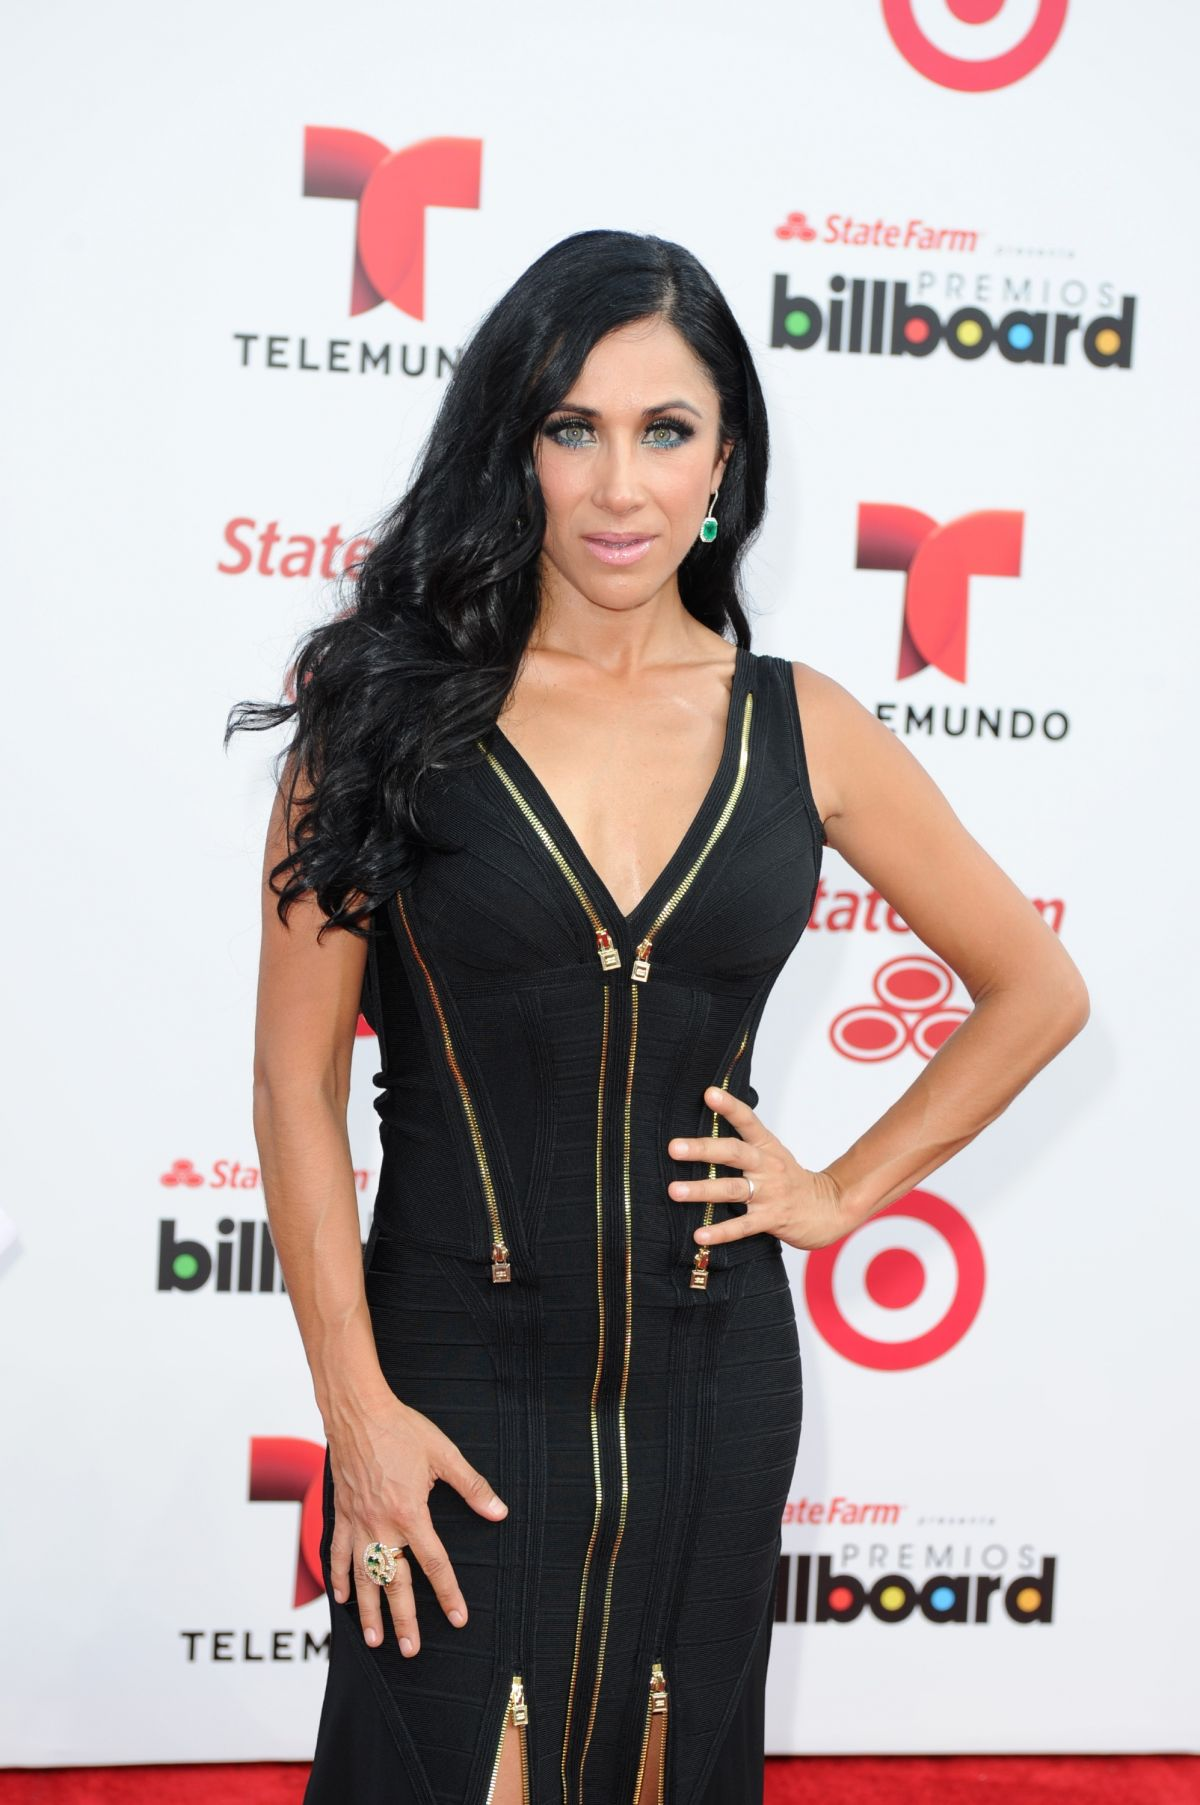 MONICA NOGUERA at 2014 Billboard Latin Music Awards in Miami